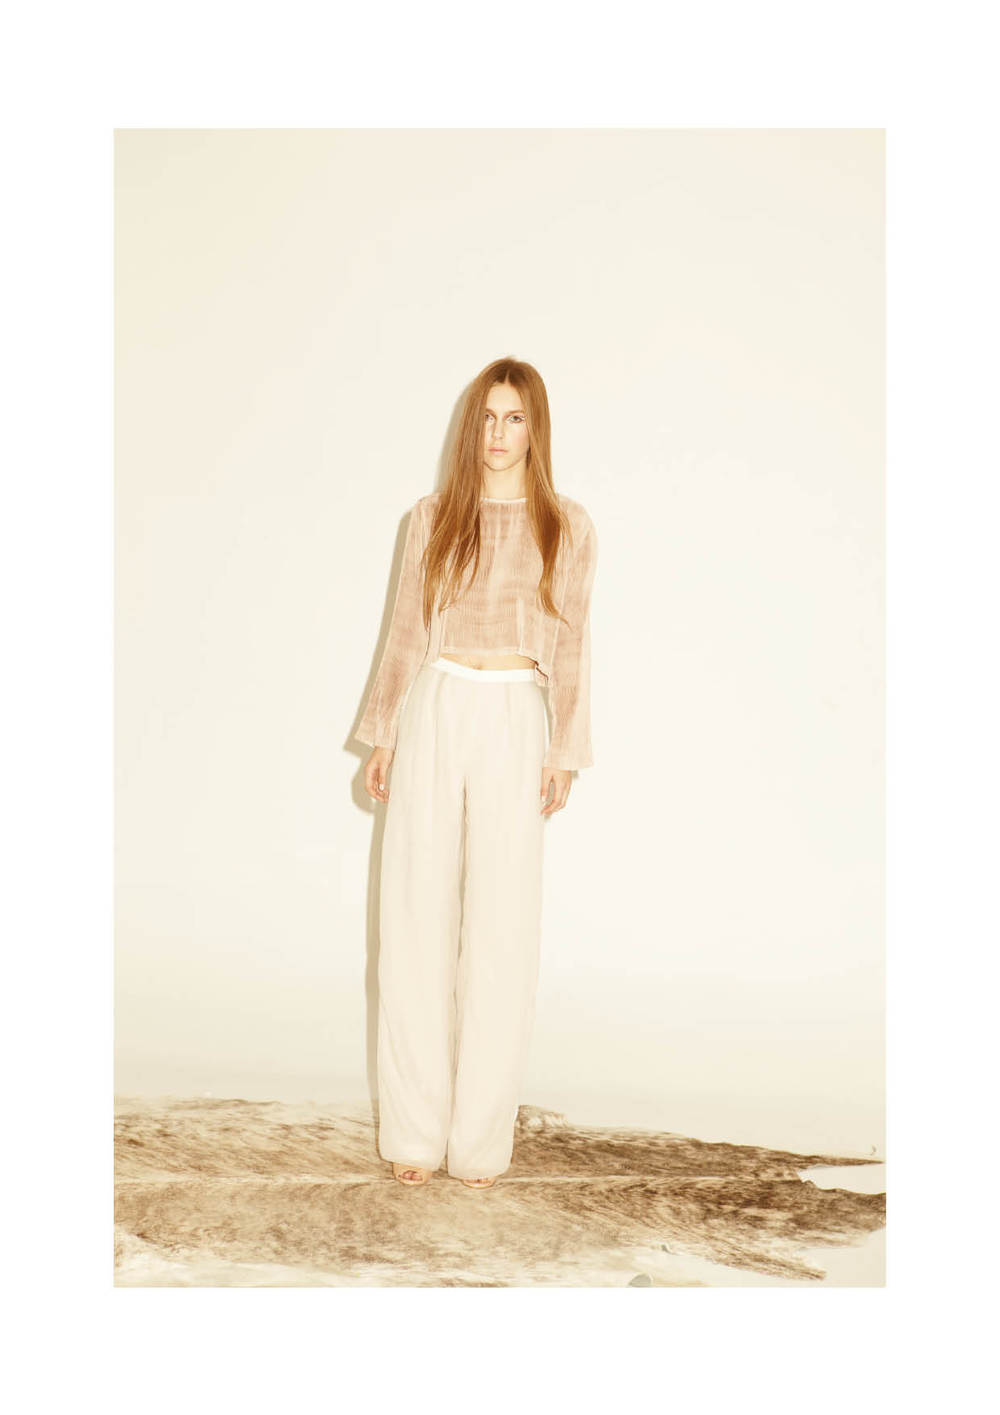 KEM-LOOKBOOK-Low-Res(updated)19.jpg